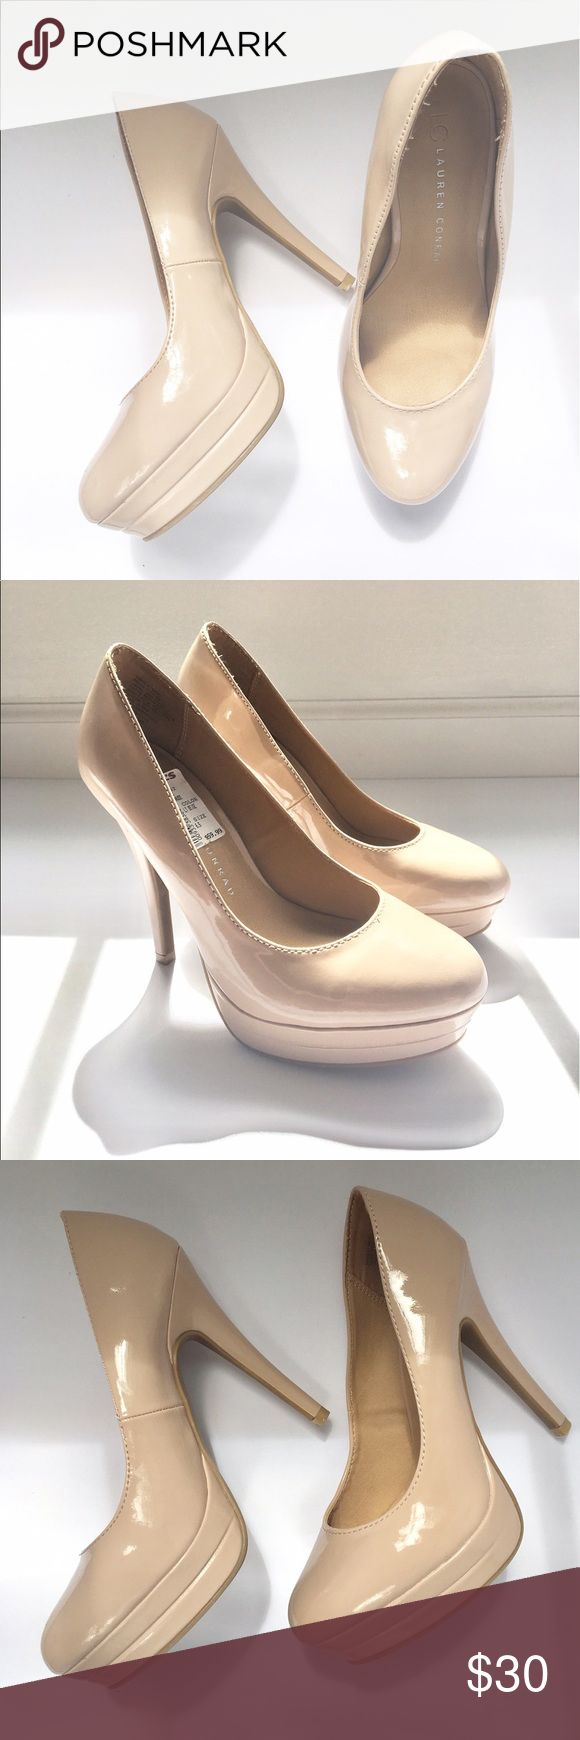 Nude Heels🤘🏼 very classic, sleek nude heels from Kohl's by Lauren Conrad.. never been worn before😍 got as a gift, do not fit me as I am a size 7! Hope one you lovely ladies fall in love with them❤️ comment below with questions or offers... thank you for stopping by my closet!!! LC Lauren Conrad Shoes Heels